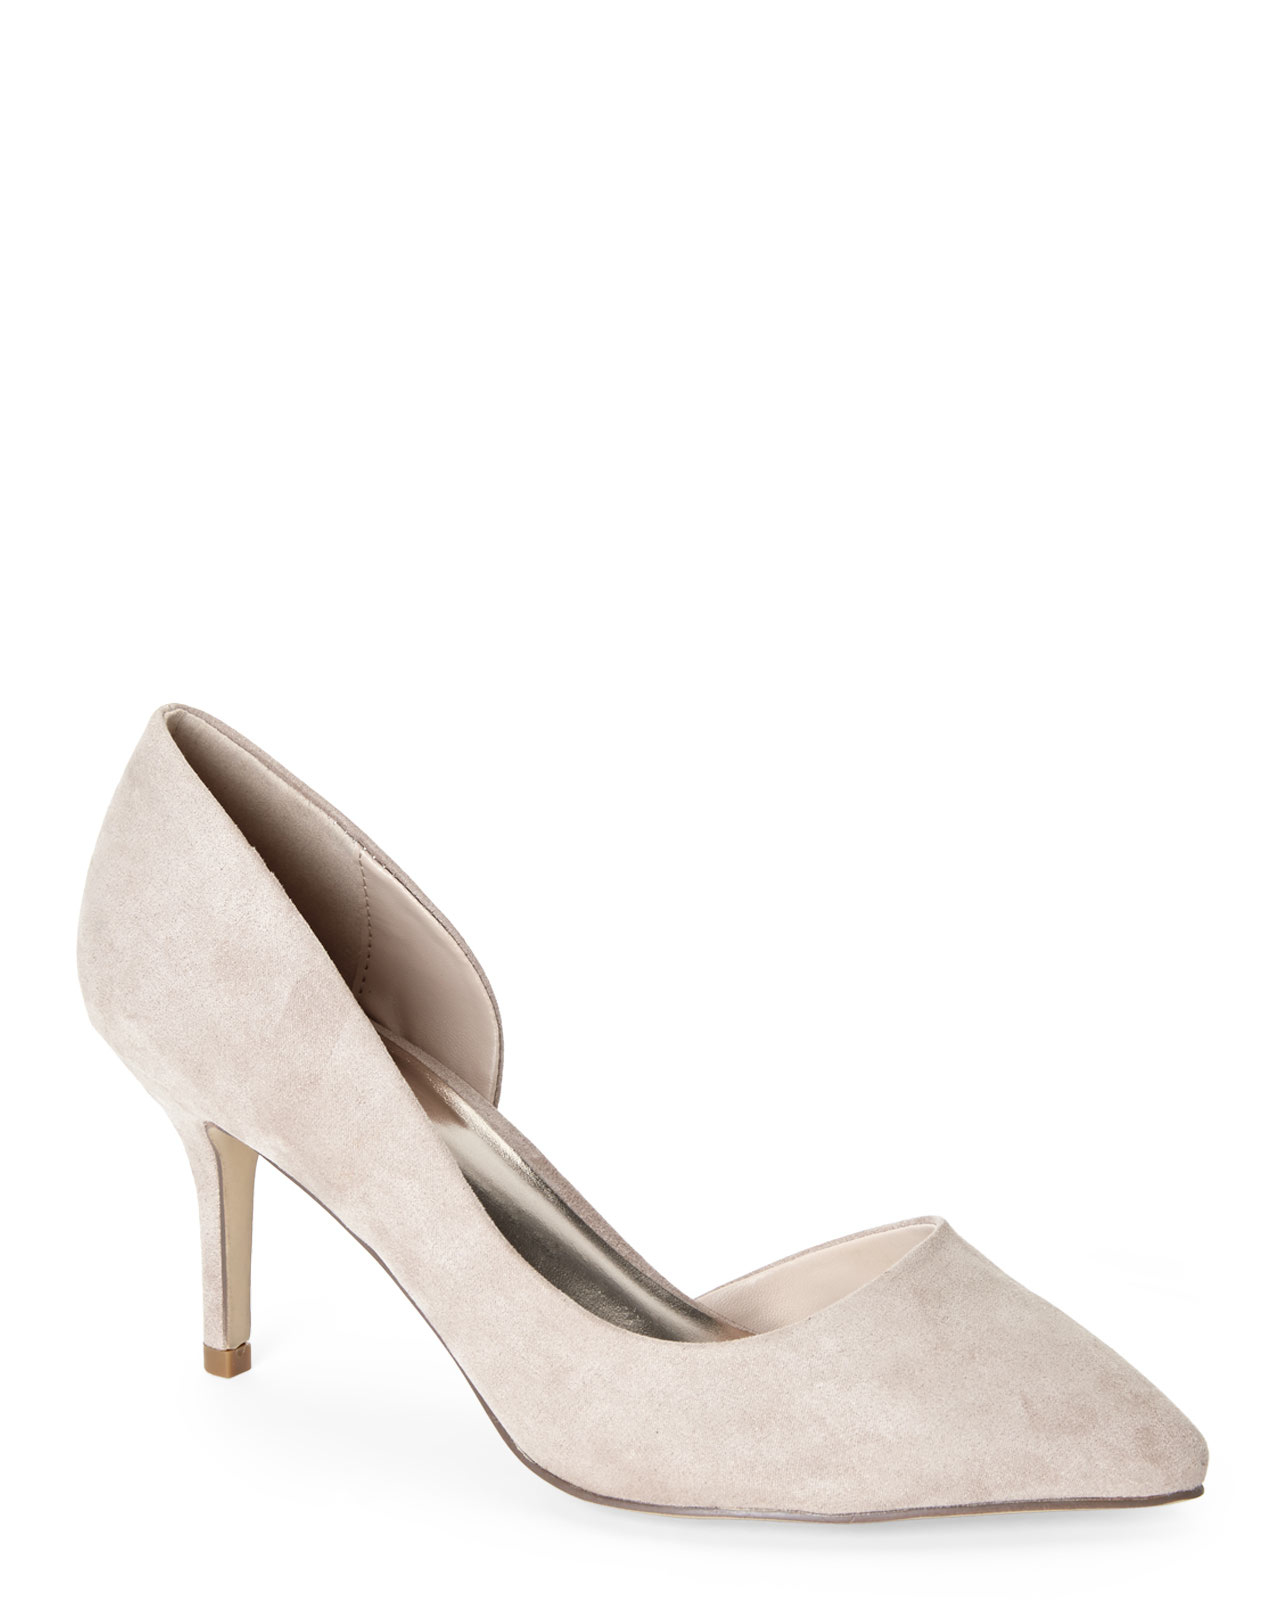 Madden Girl Taupe Kopy Kat D'Orsay Pumps In Gray